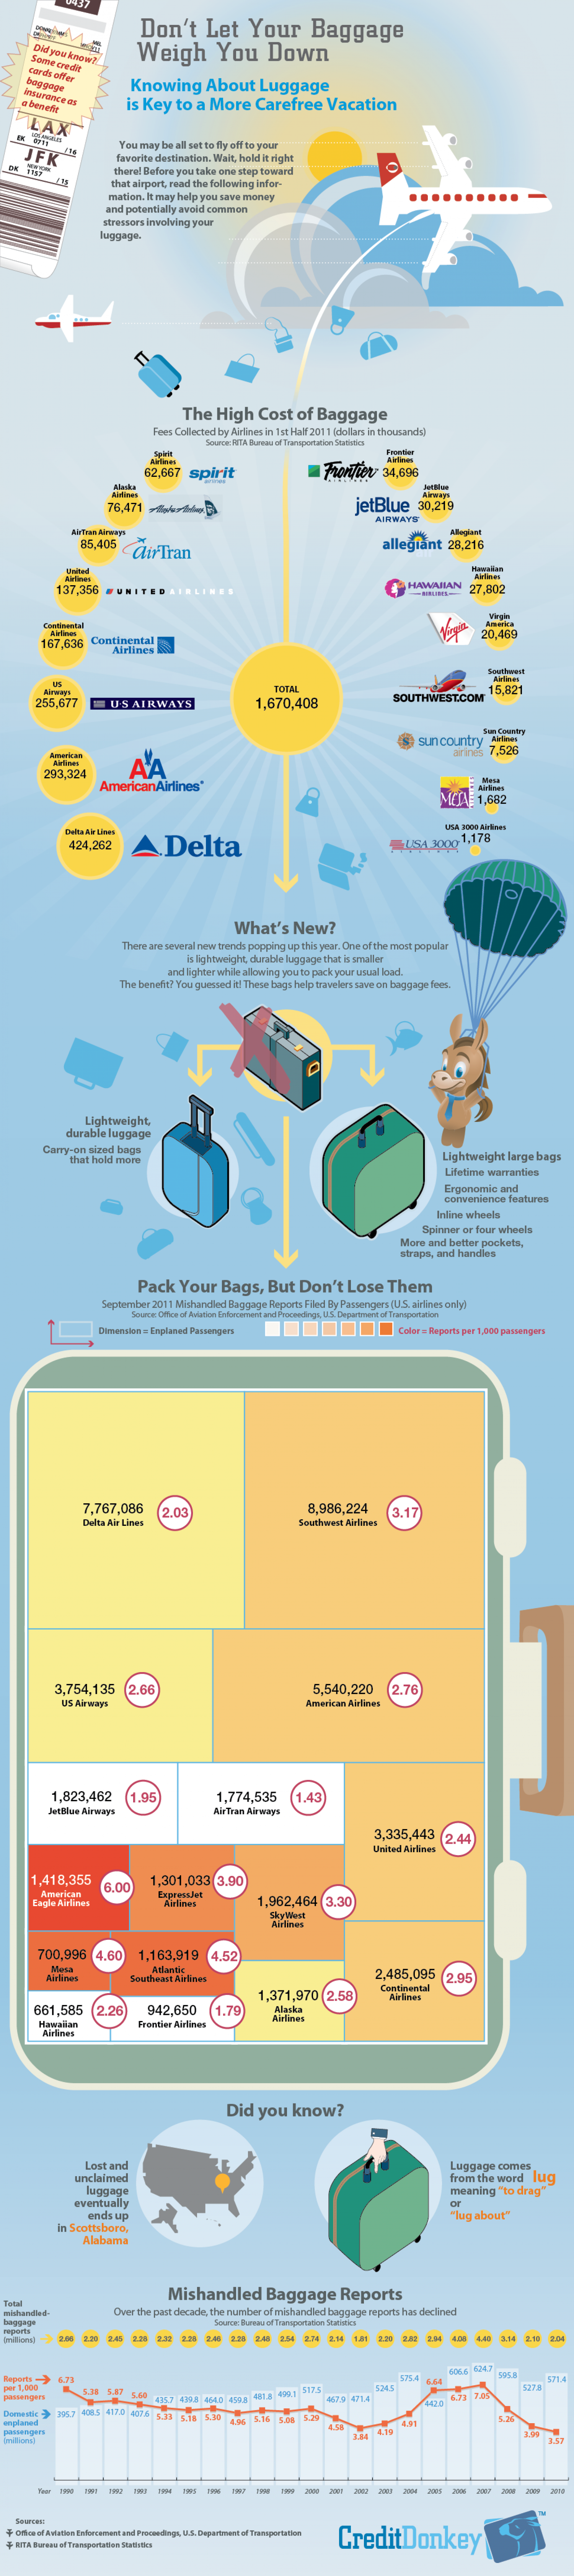 Don't Let Your Baggage Weigh You Down Infographic